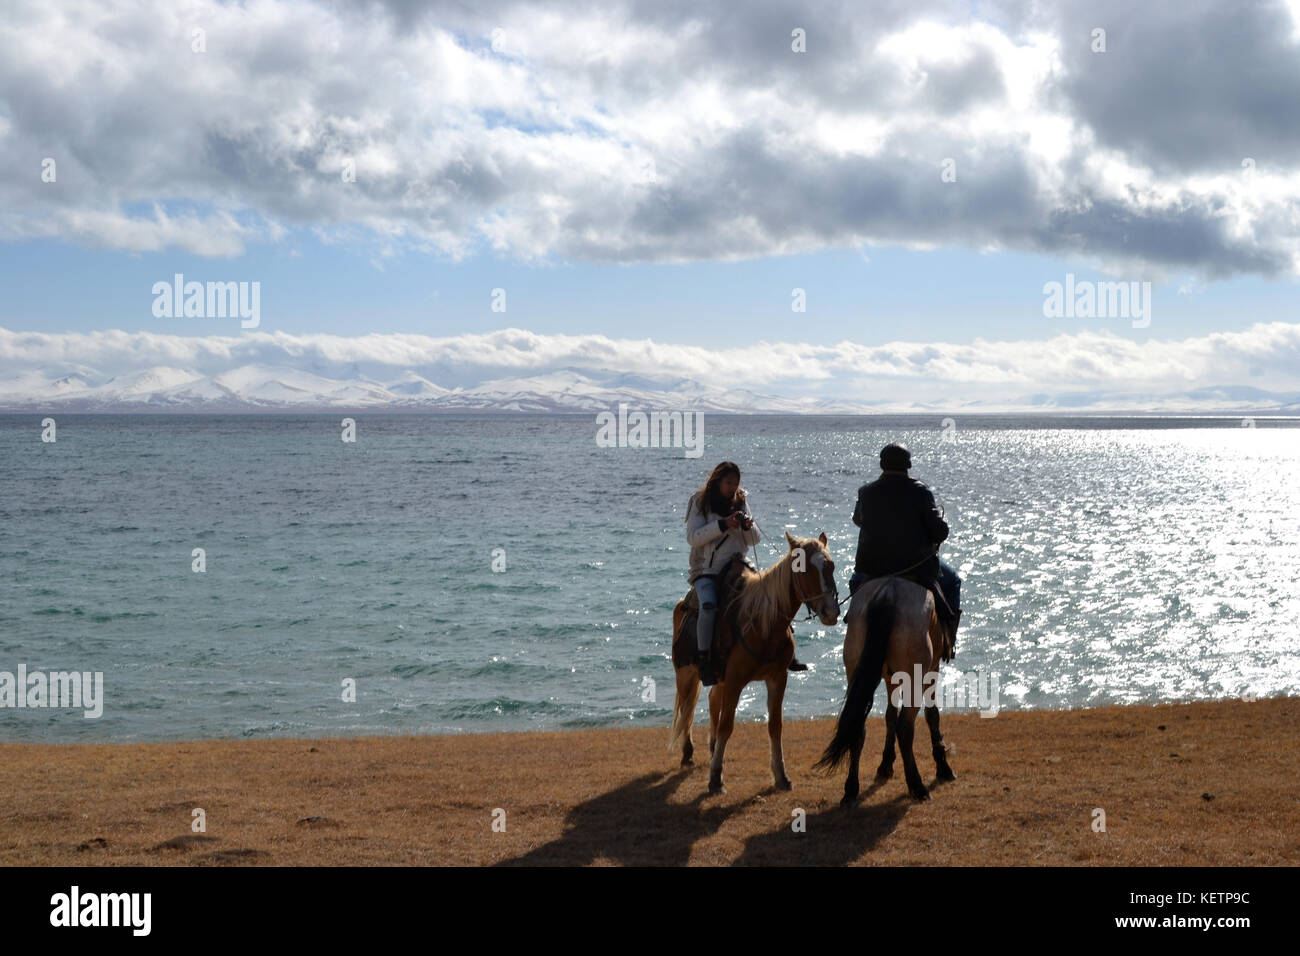 Pictures taken during a 3-day horse riding trek in Kyrgyzstan at Song Kol lake. Mountains, landscapes, Steppe and Stock Photo